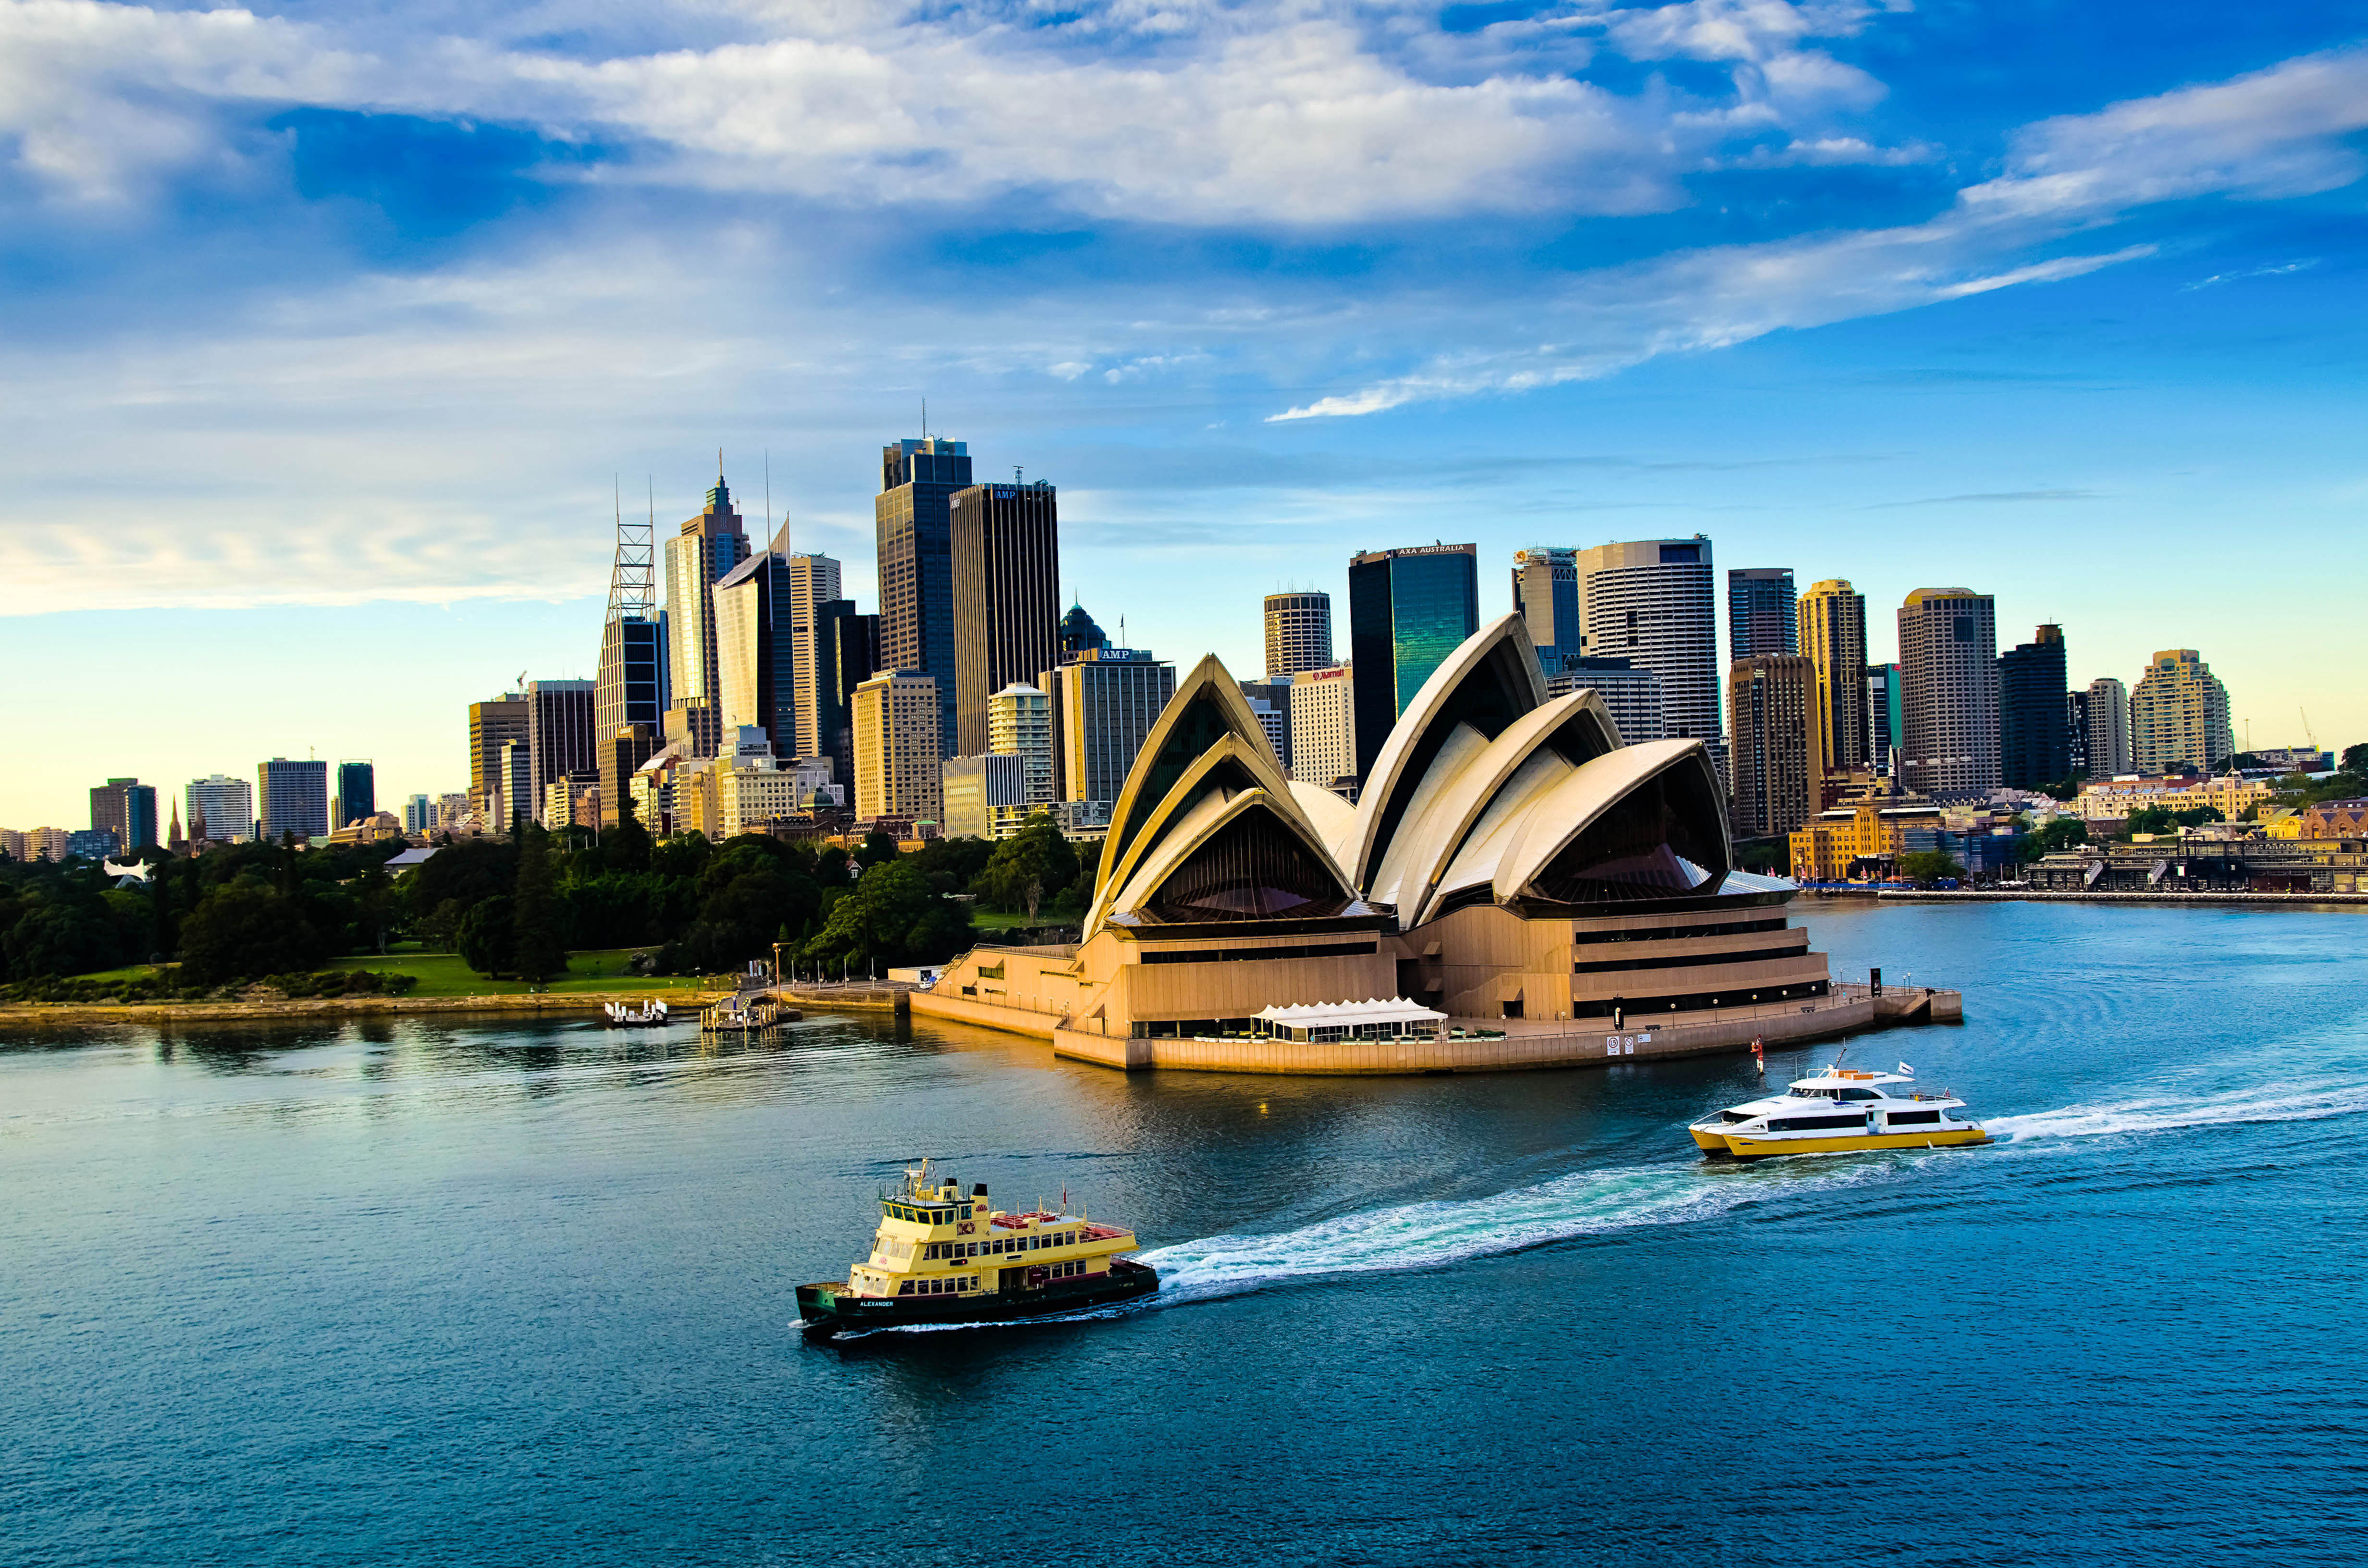 Sydney New Beautiful HD Wallpapers 2015 - All HD Wallpapers